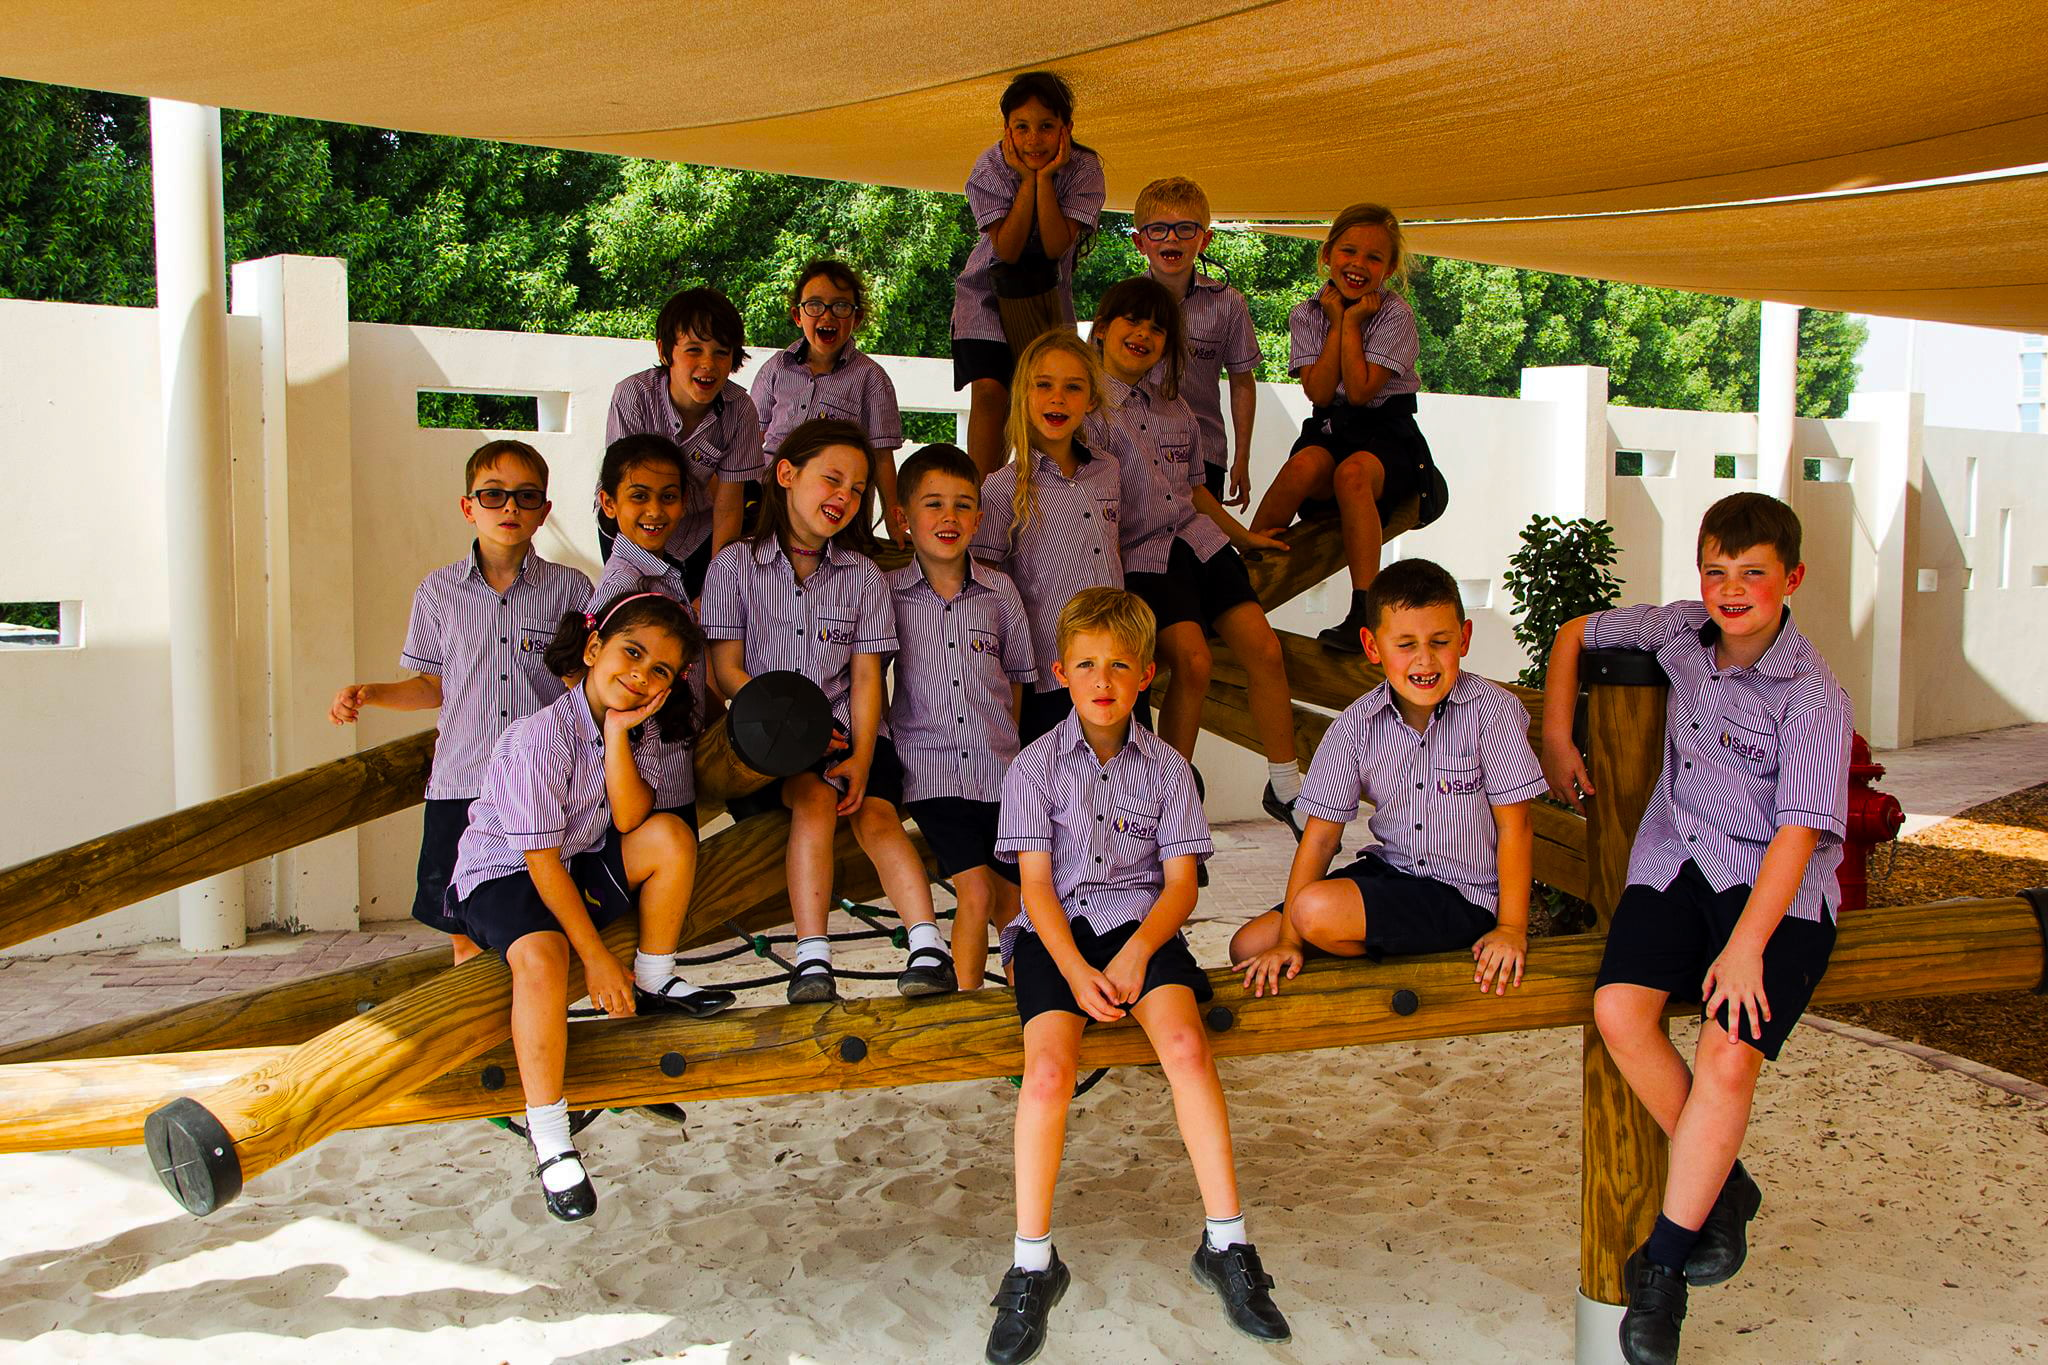 Children at Safa Community School in Dubai celebrating their end of year in one of the many shaded areas within the school's gardens